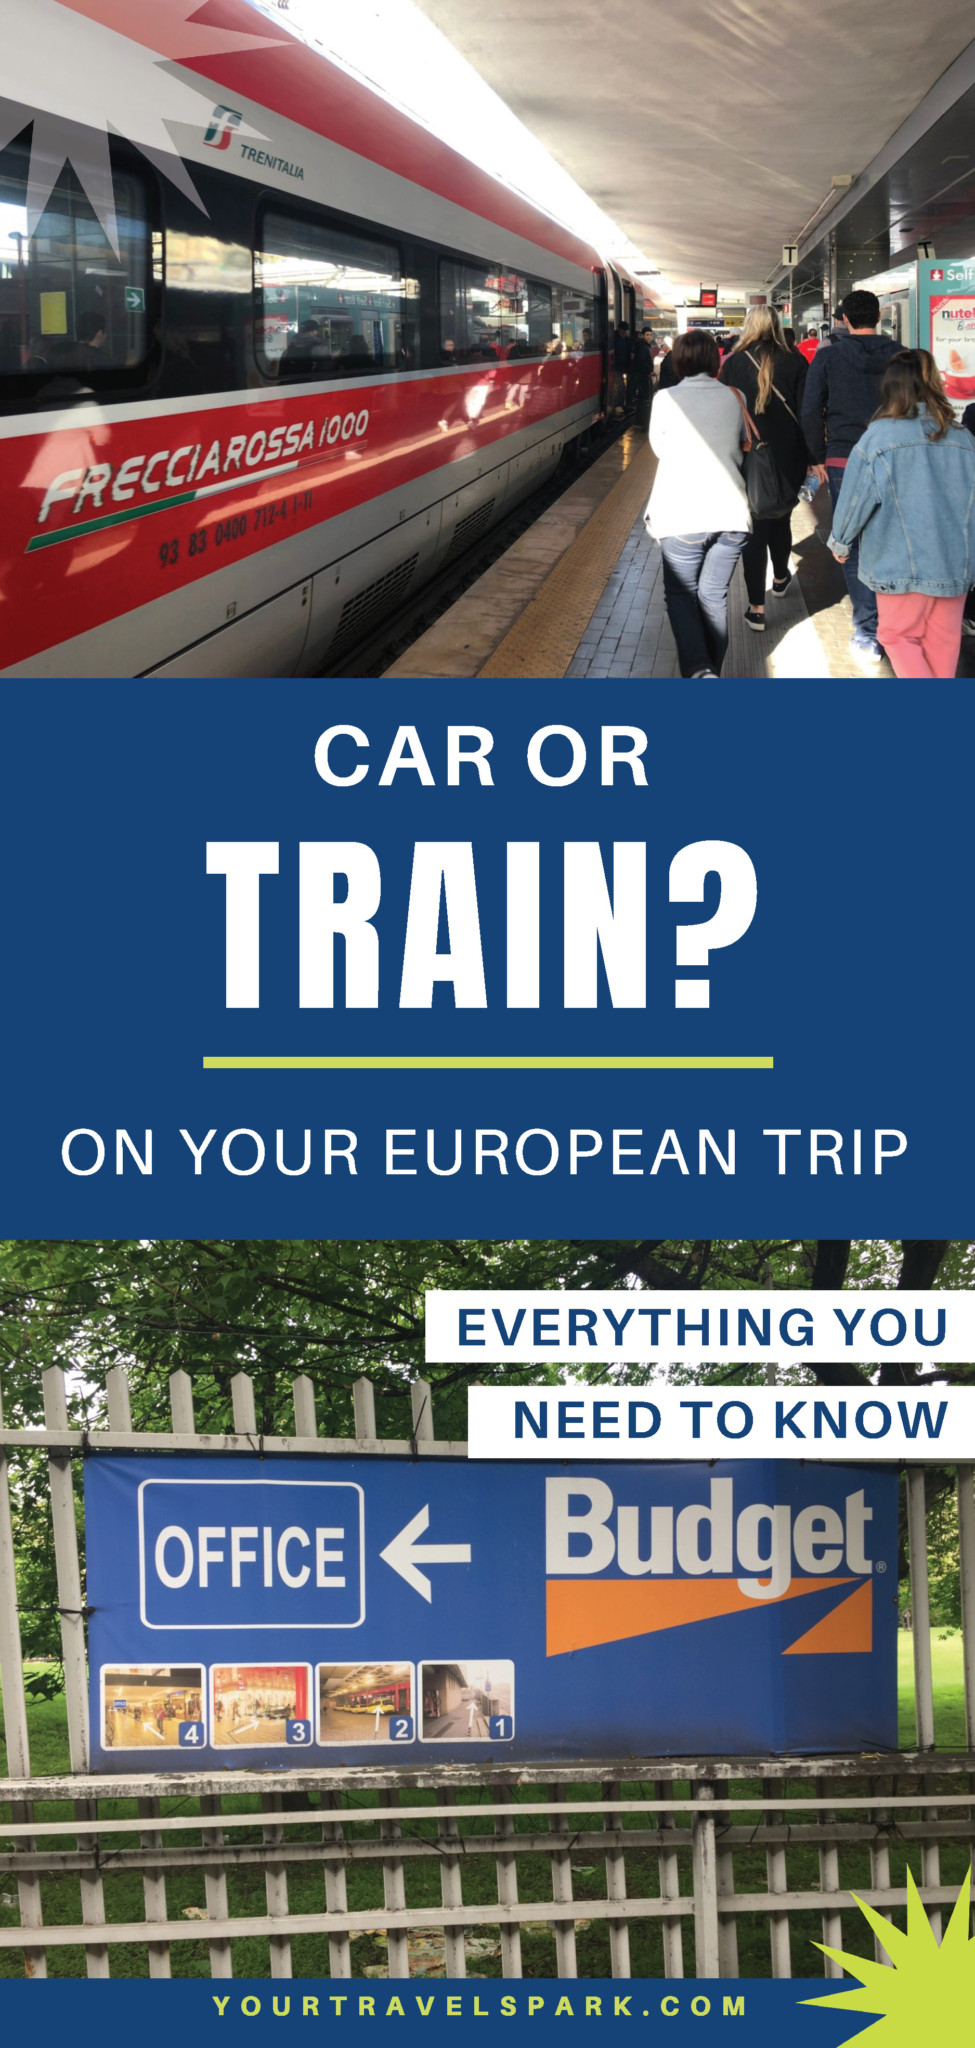 Here are some tips on whether you should rent a car or take the train in Europe. On your next European vacation, look at the pros and cons of both taking the train and renting a car. #rentacar #train #trainineurope #eurorail #europeancarrental #carrental #europe #europetransportation #transportation #europerentacar